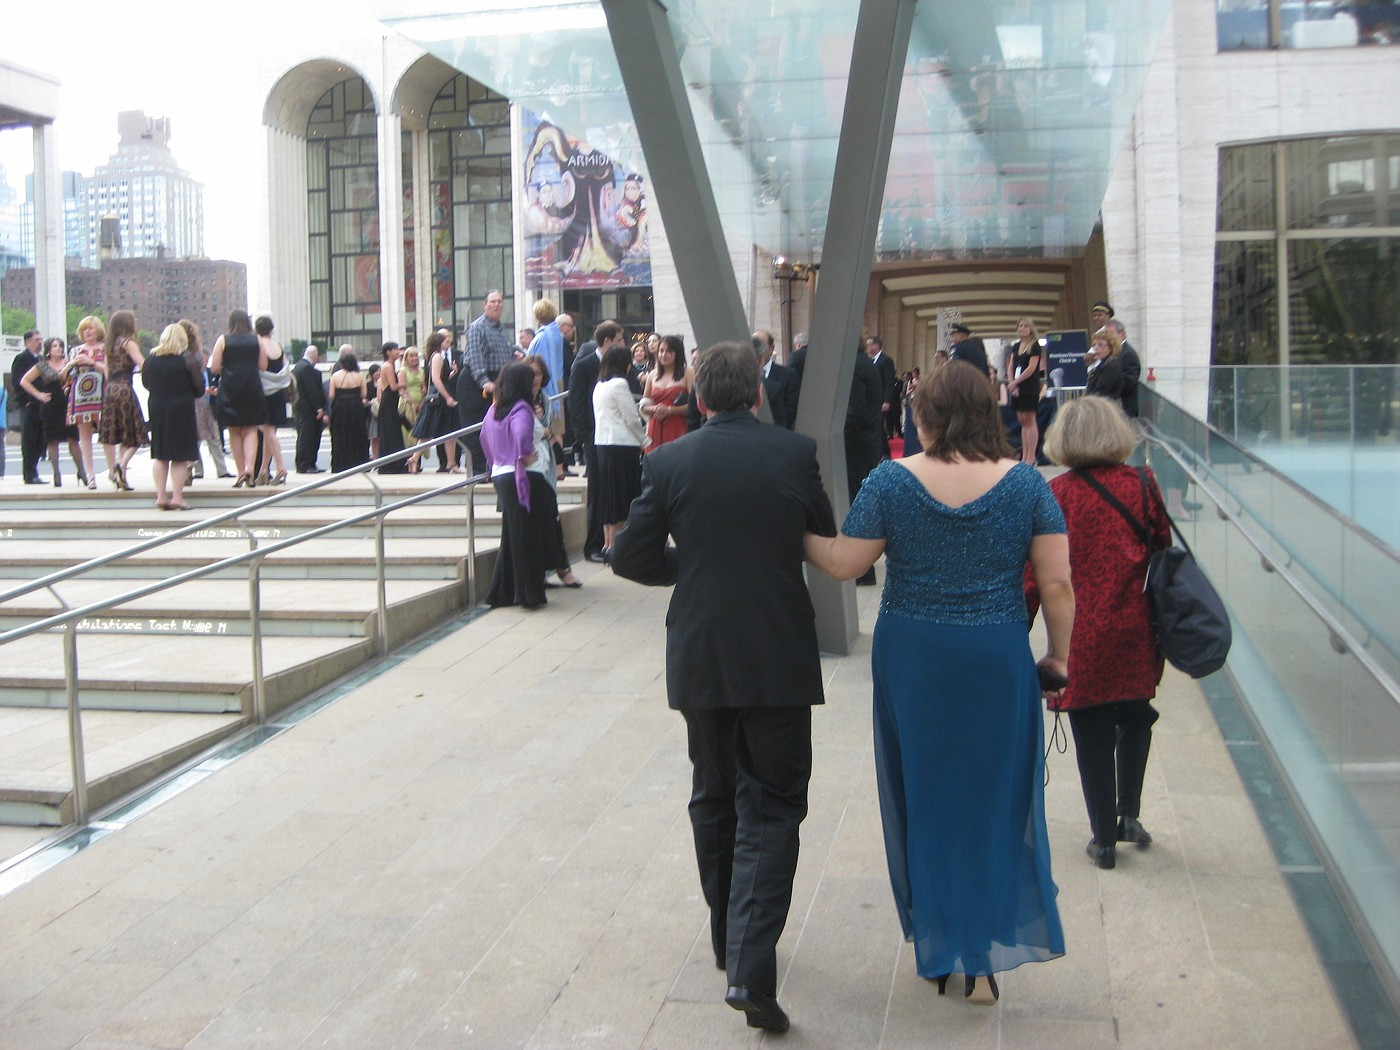 Walking into Lincoln Center